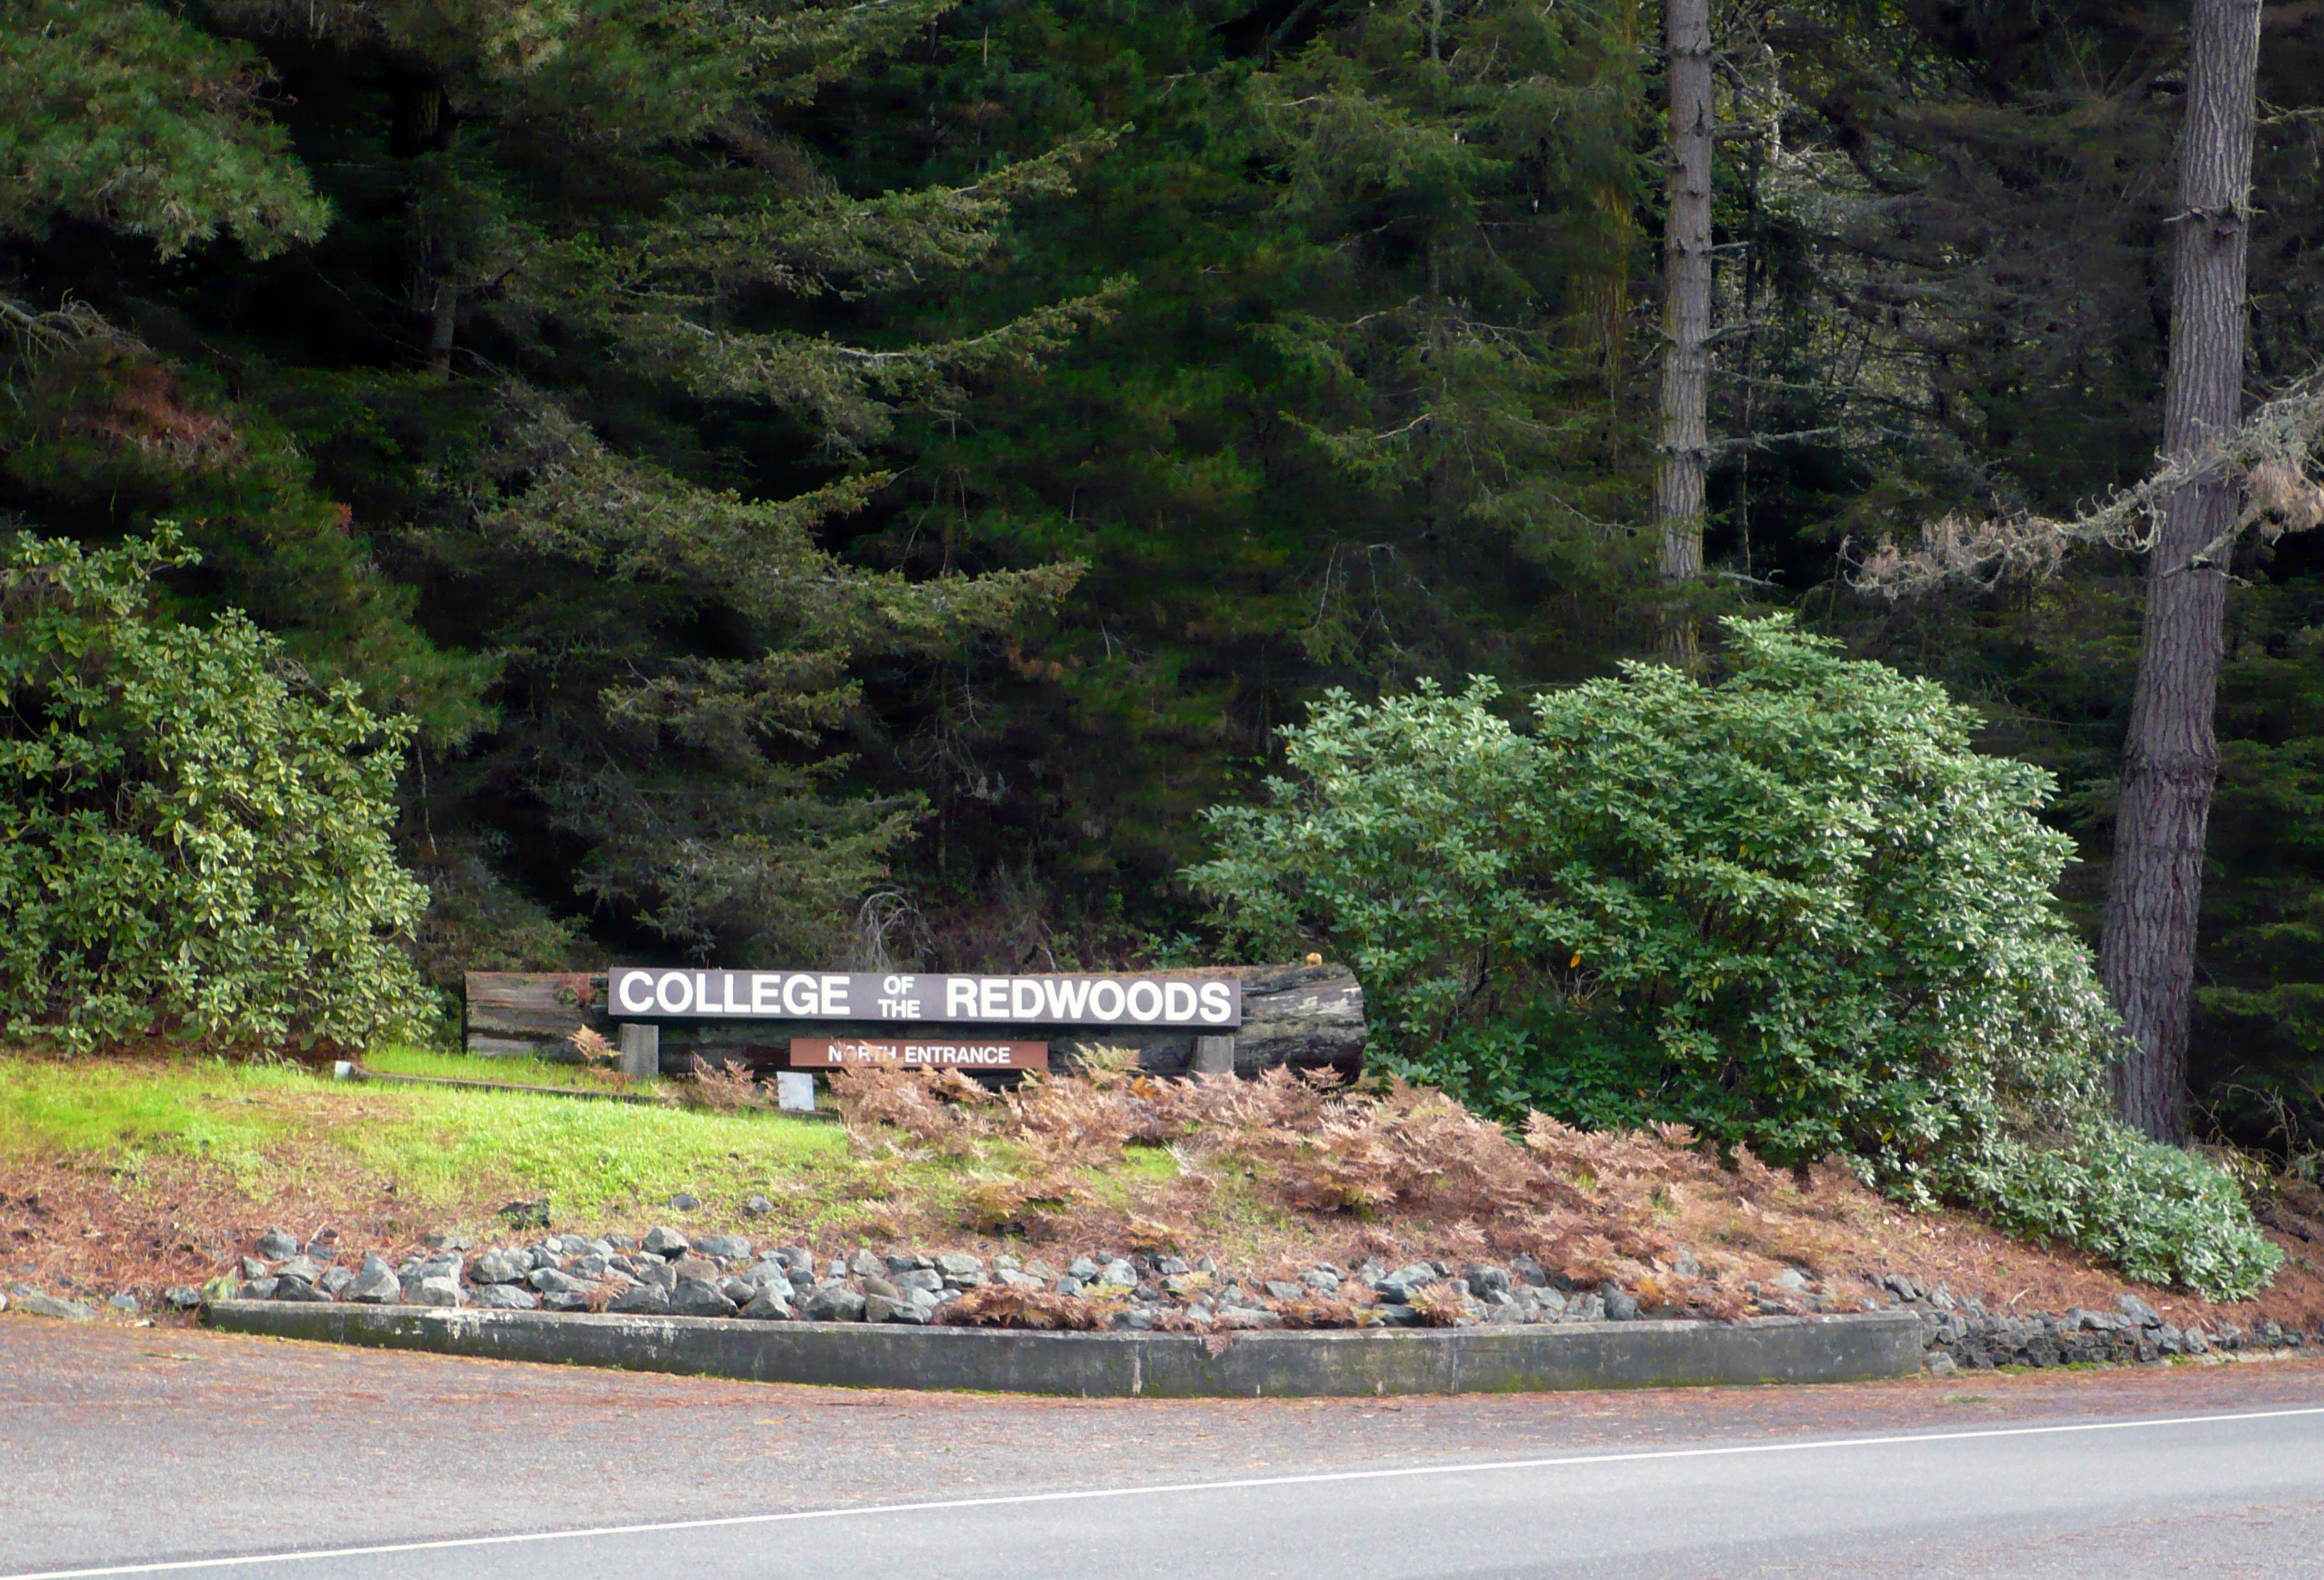 College Of The Redwoods - Wikipedia Within When Does School Start At College Of The Redwoods After Winter Break